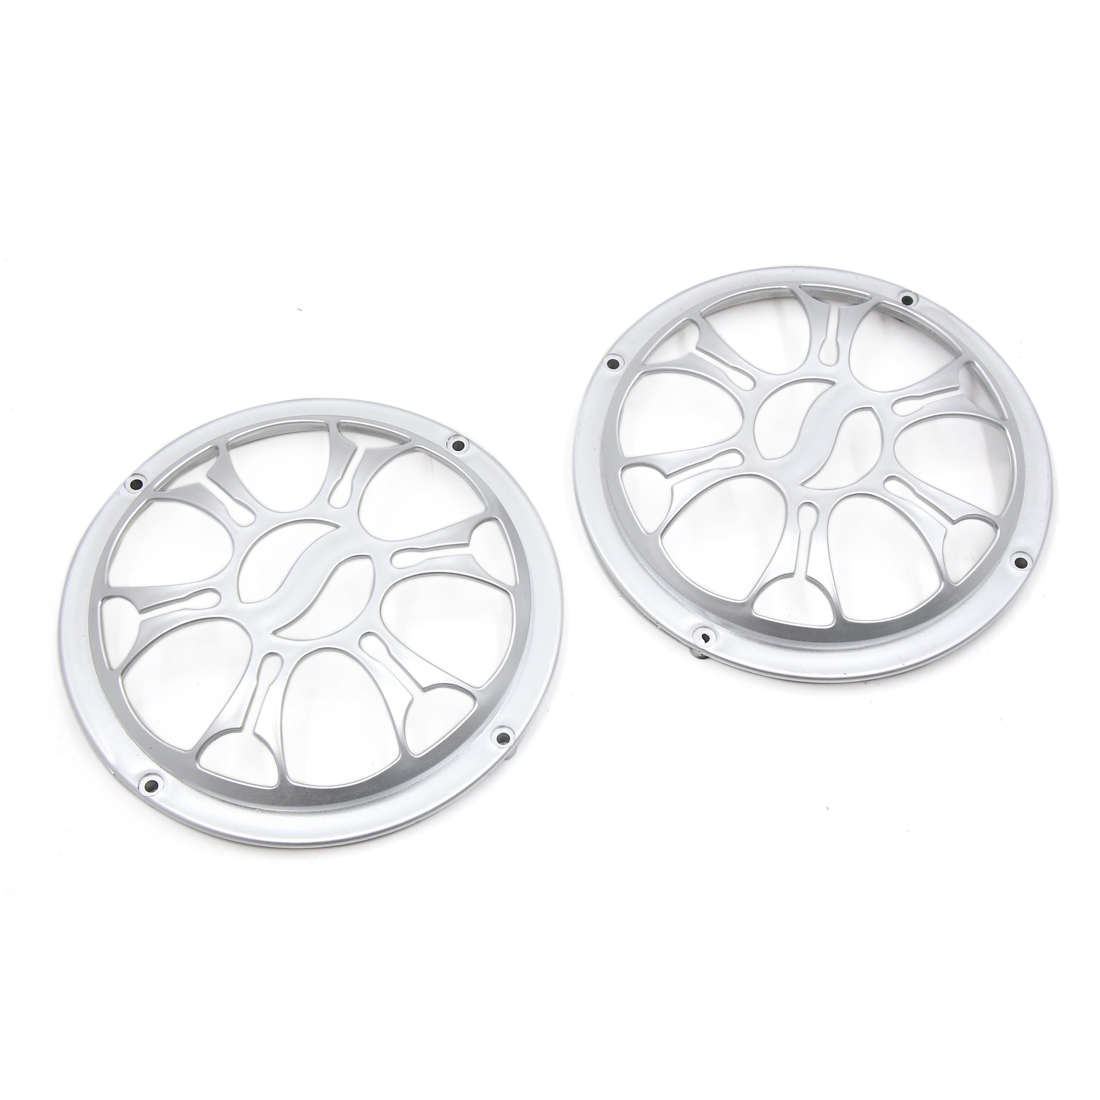 "2 Pcs 6"" Dia Silver Tone Plastic Audio Speaker Subwoofer Dust Cover Protector for Auto Car"